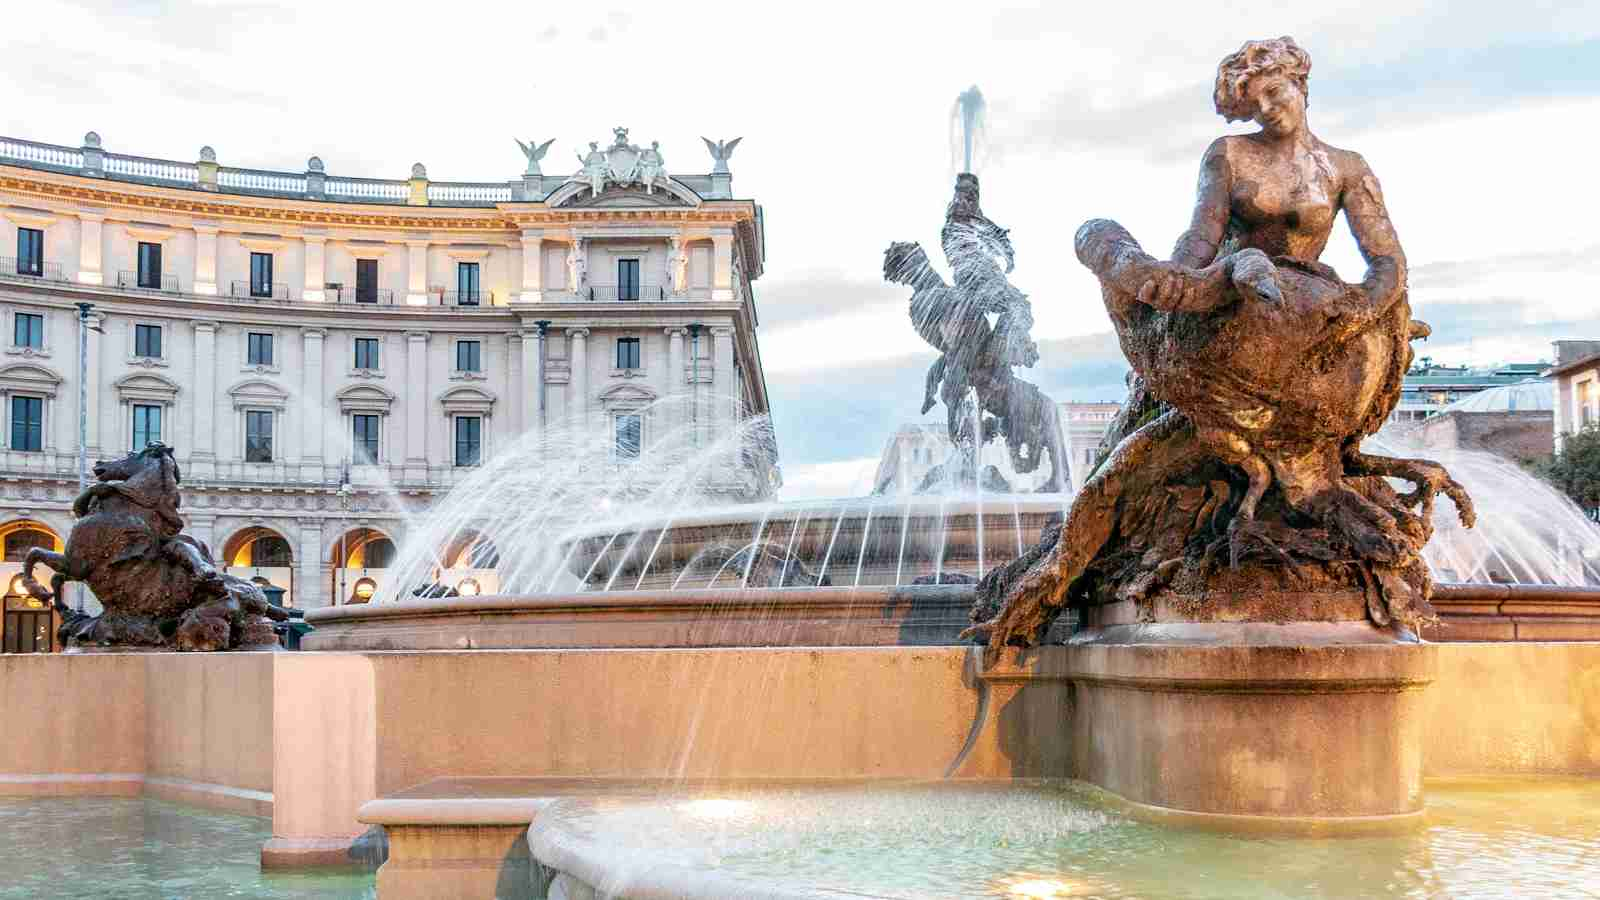 The Piazza della Repubblica. (Photo by John Seaton Callahan / Getty Images)